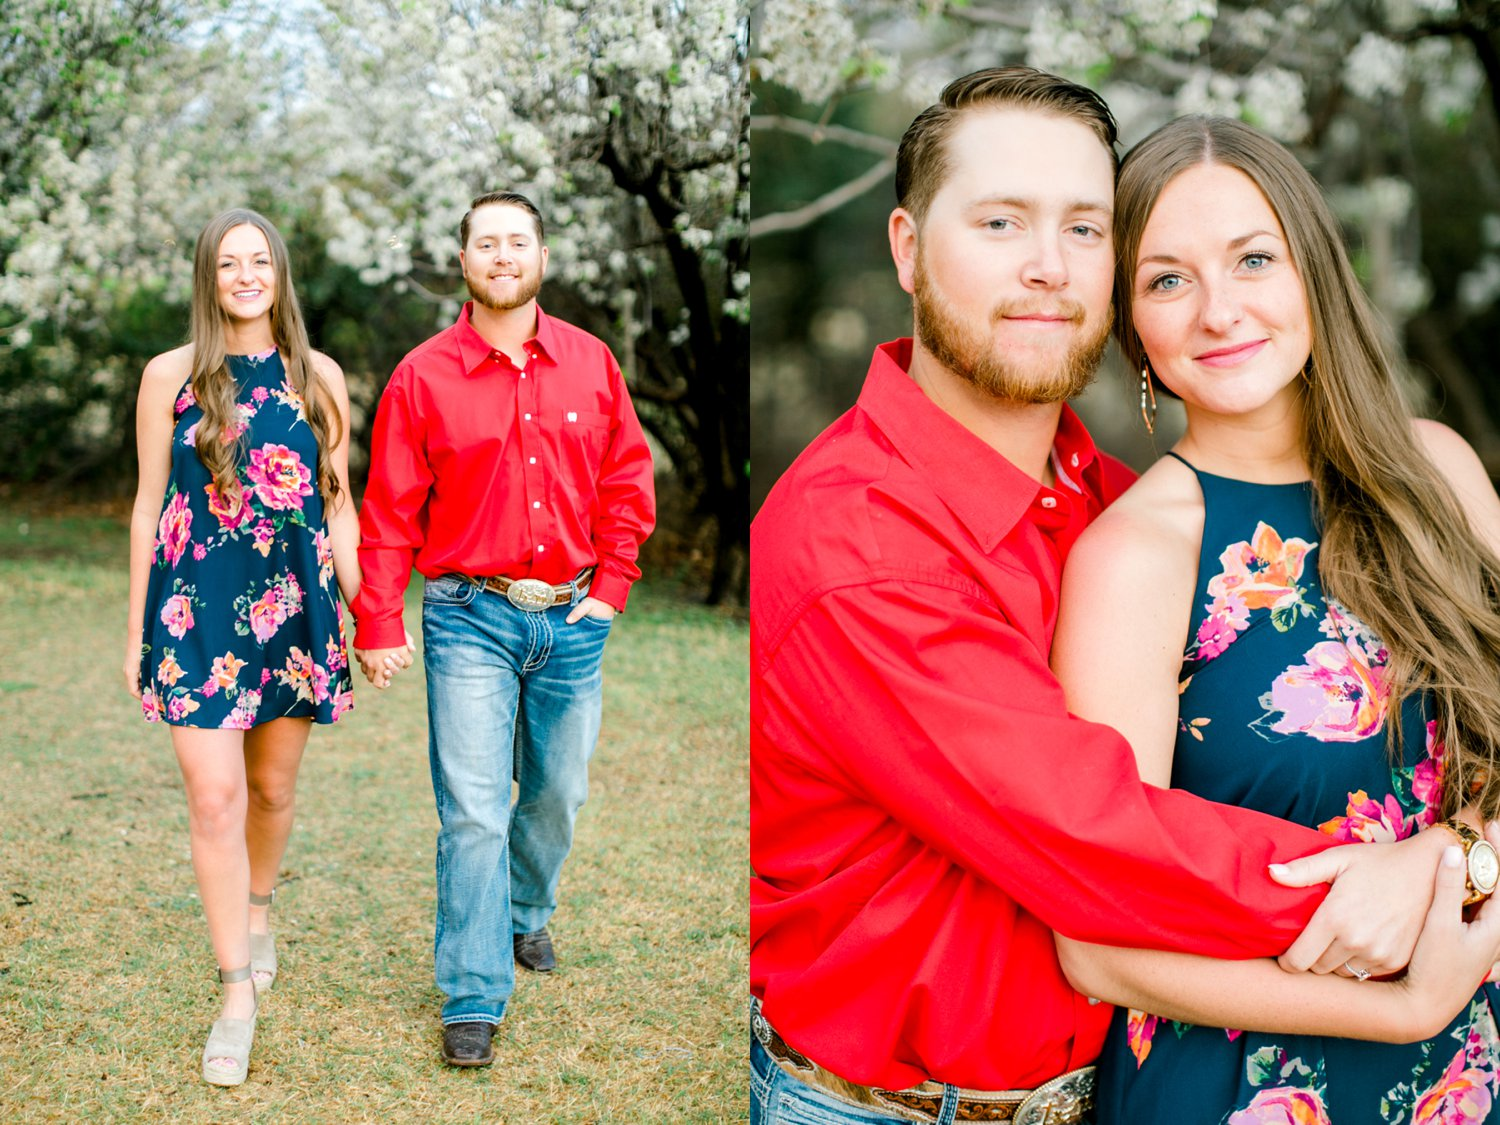 bailey-and-scotland-church-engagement-lubbock-photographer0006.jpg